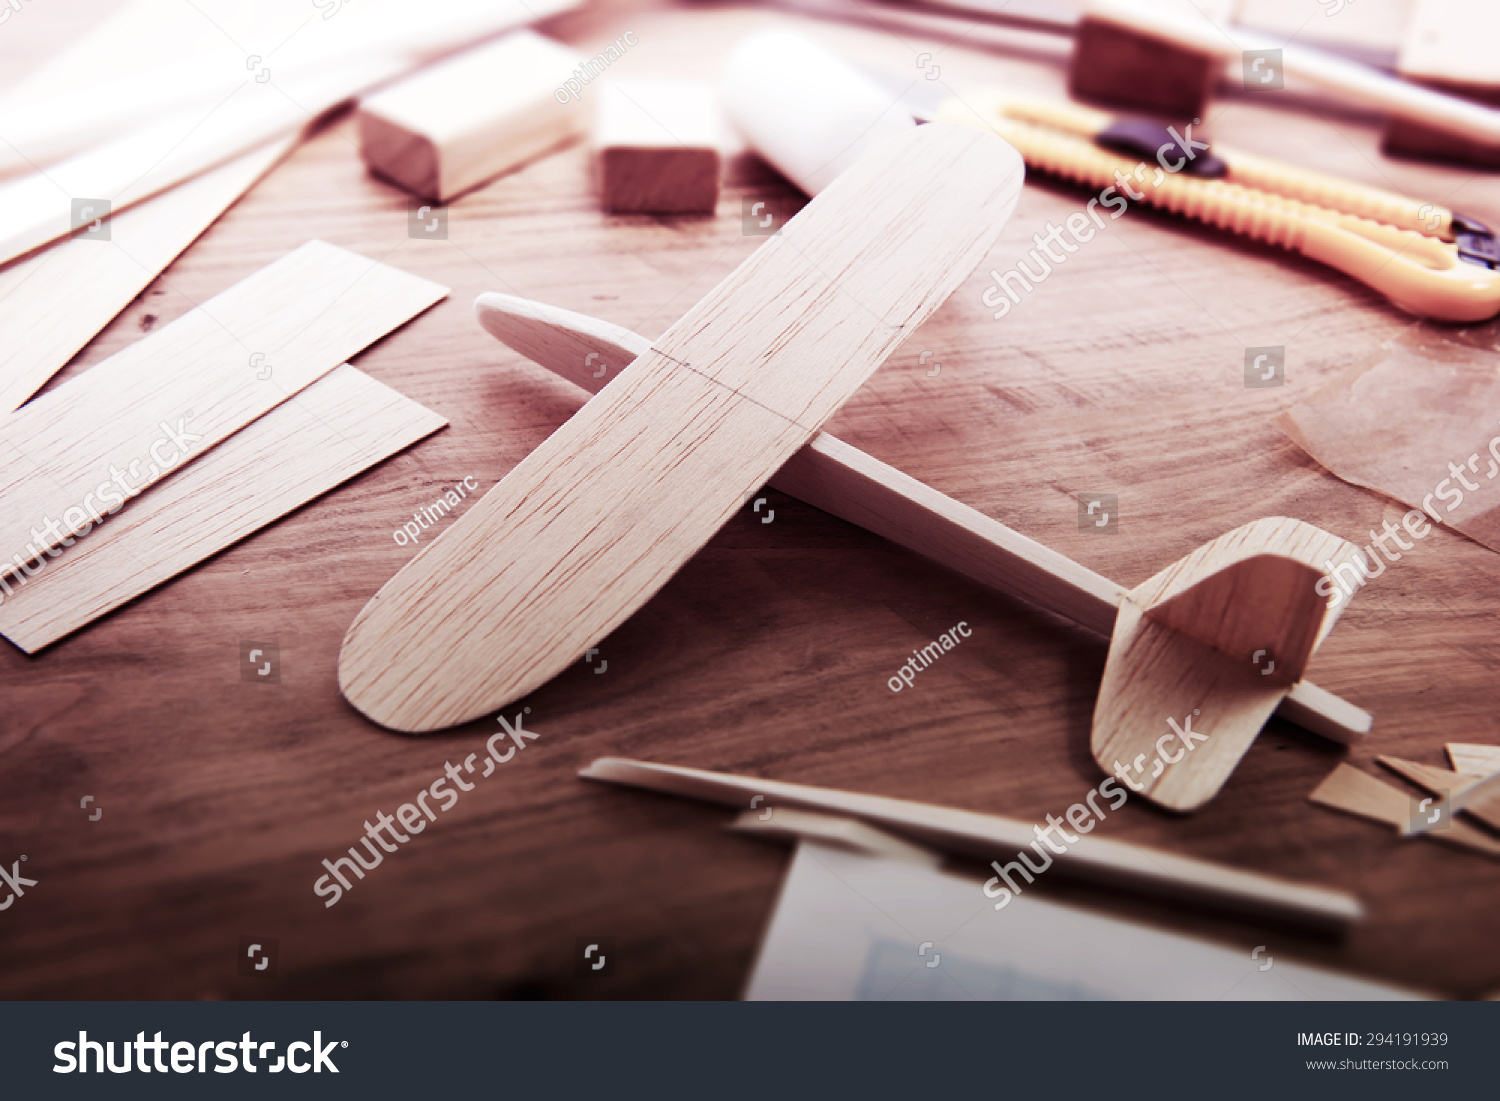 Making model airplane from wood wooden air plane